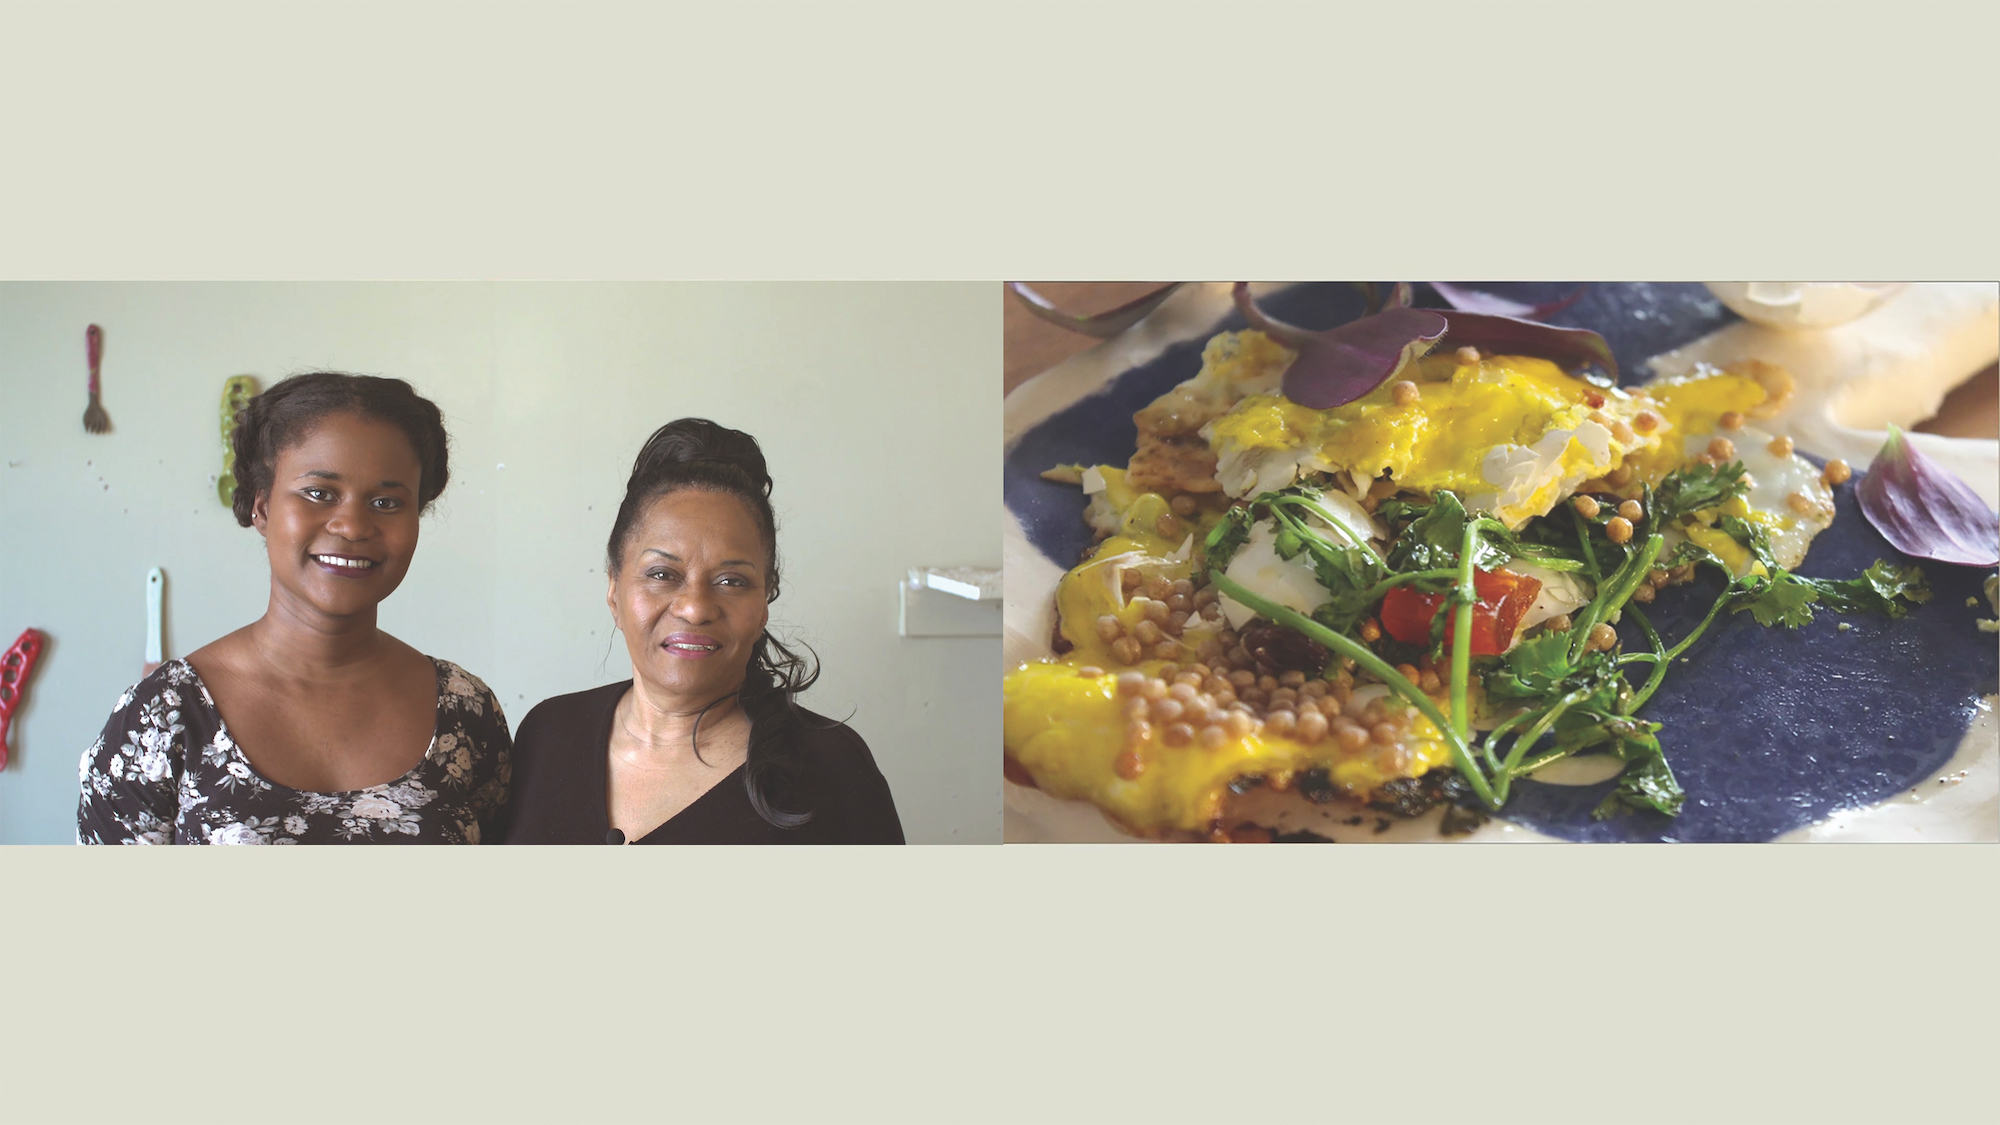 Split screen image still of two woman on one side and dish of food on other